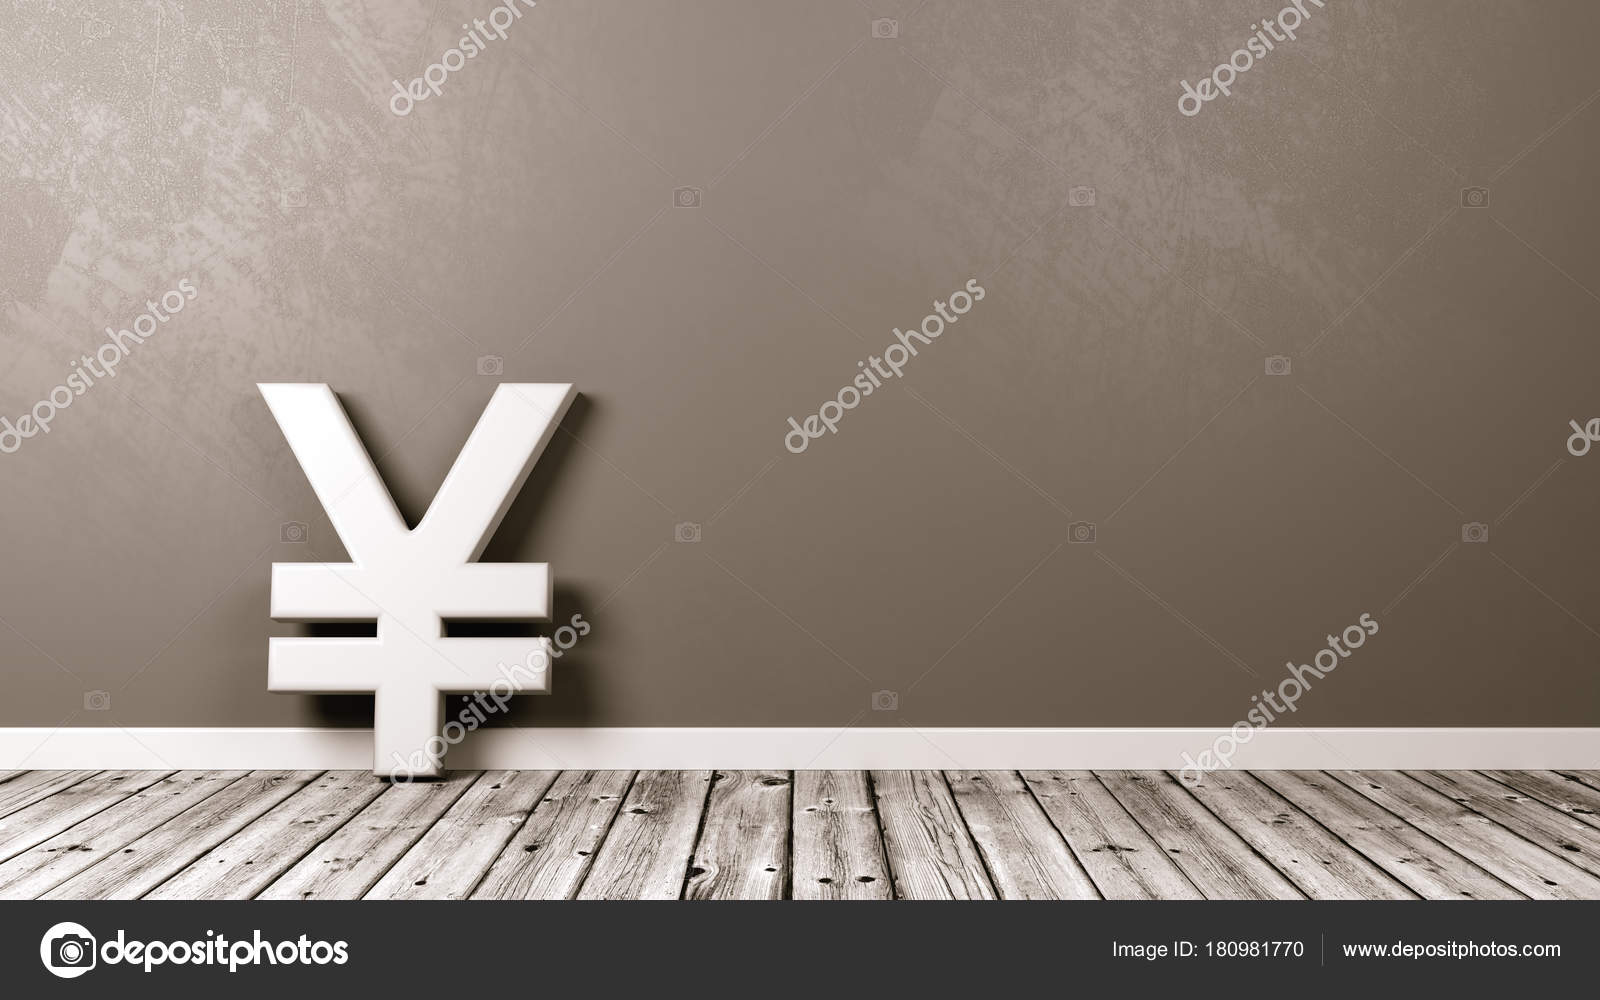 Yen Or Yuan Currency Sign On Wooden Floor Against Wall Stock Photo